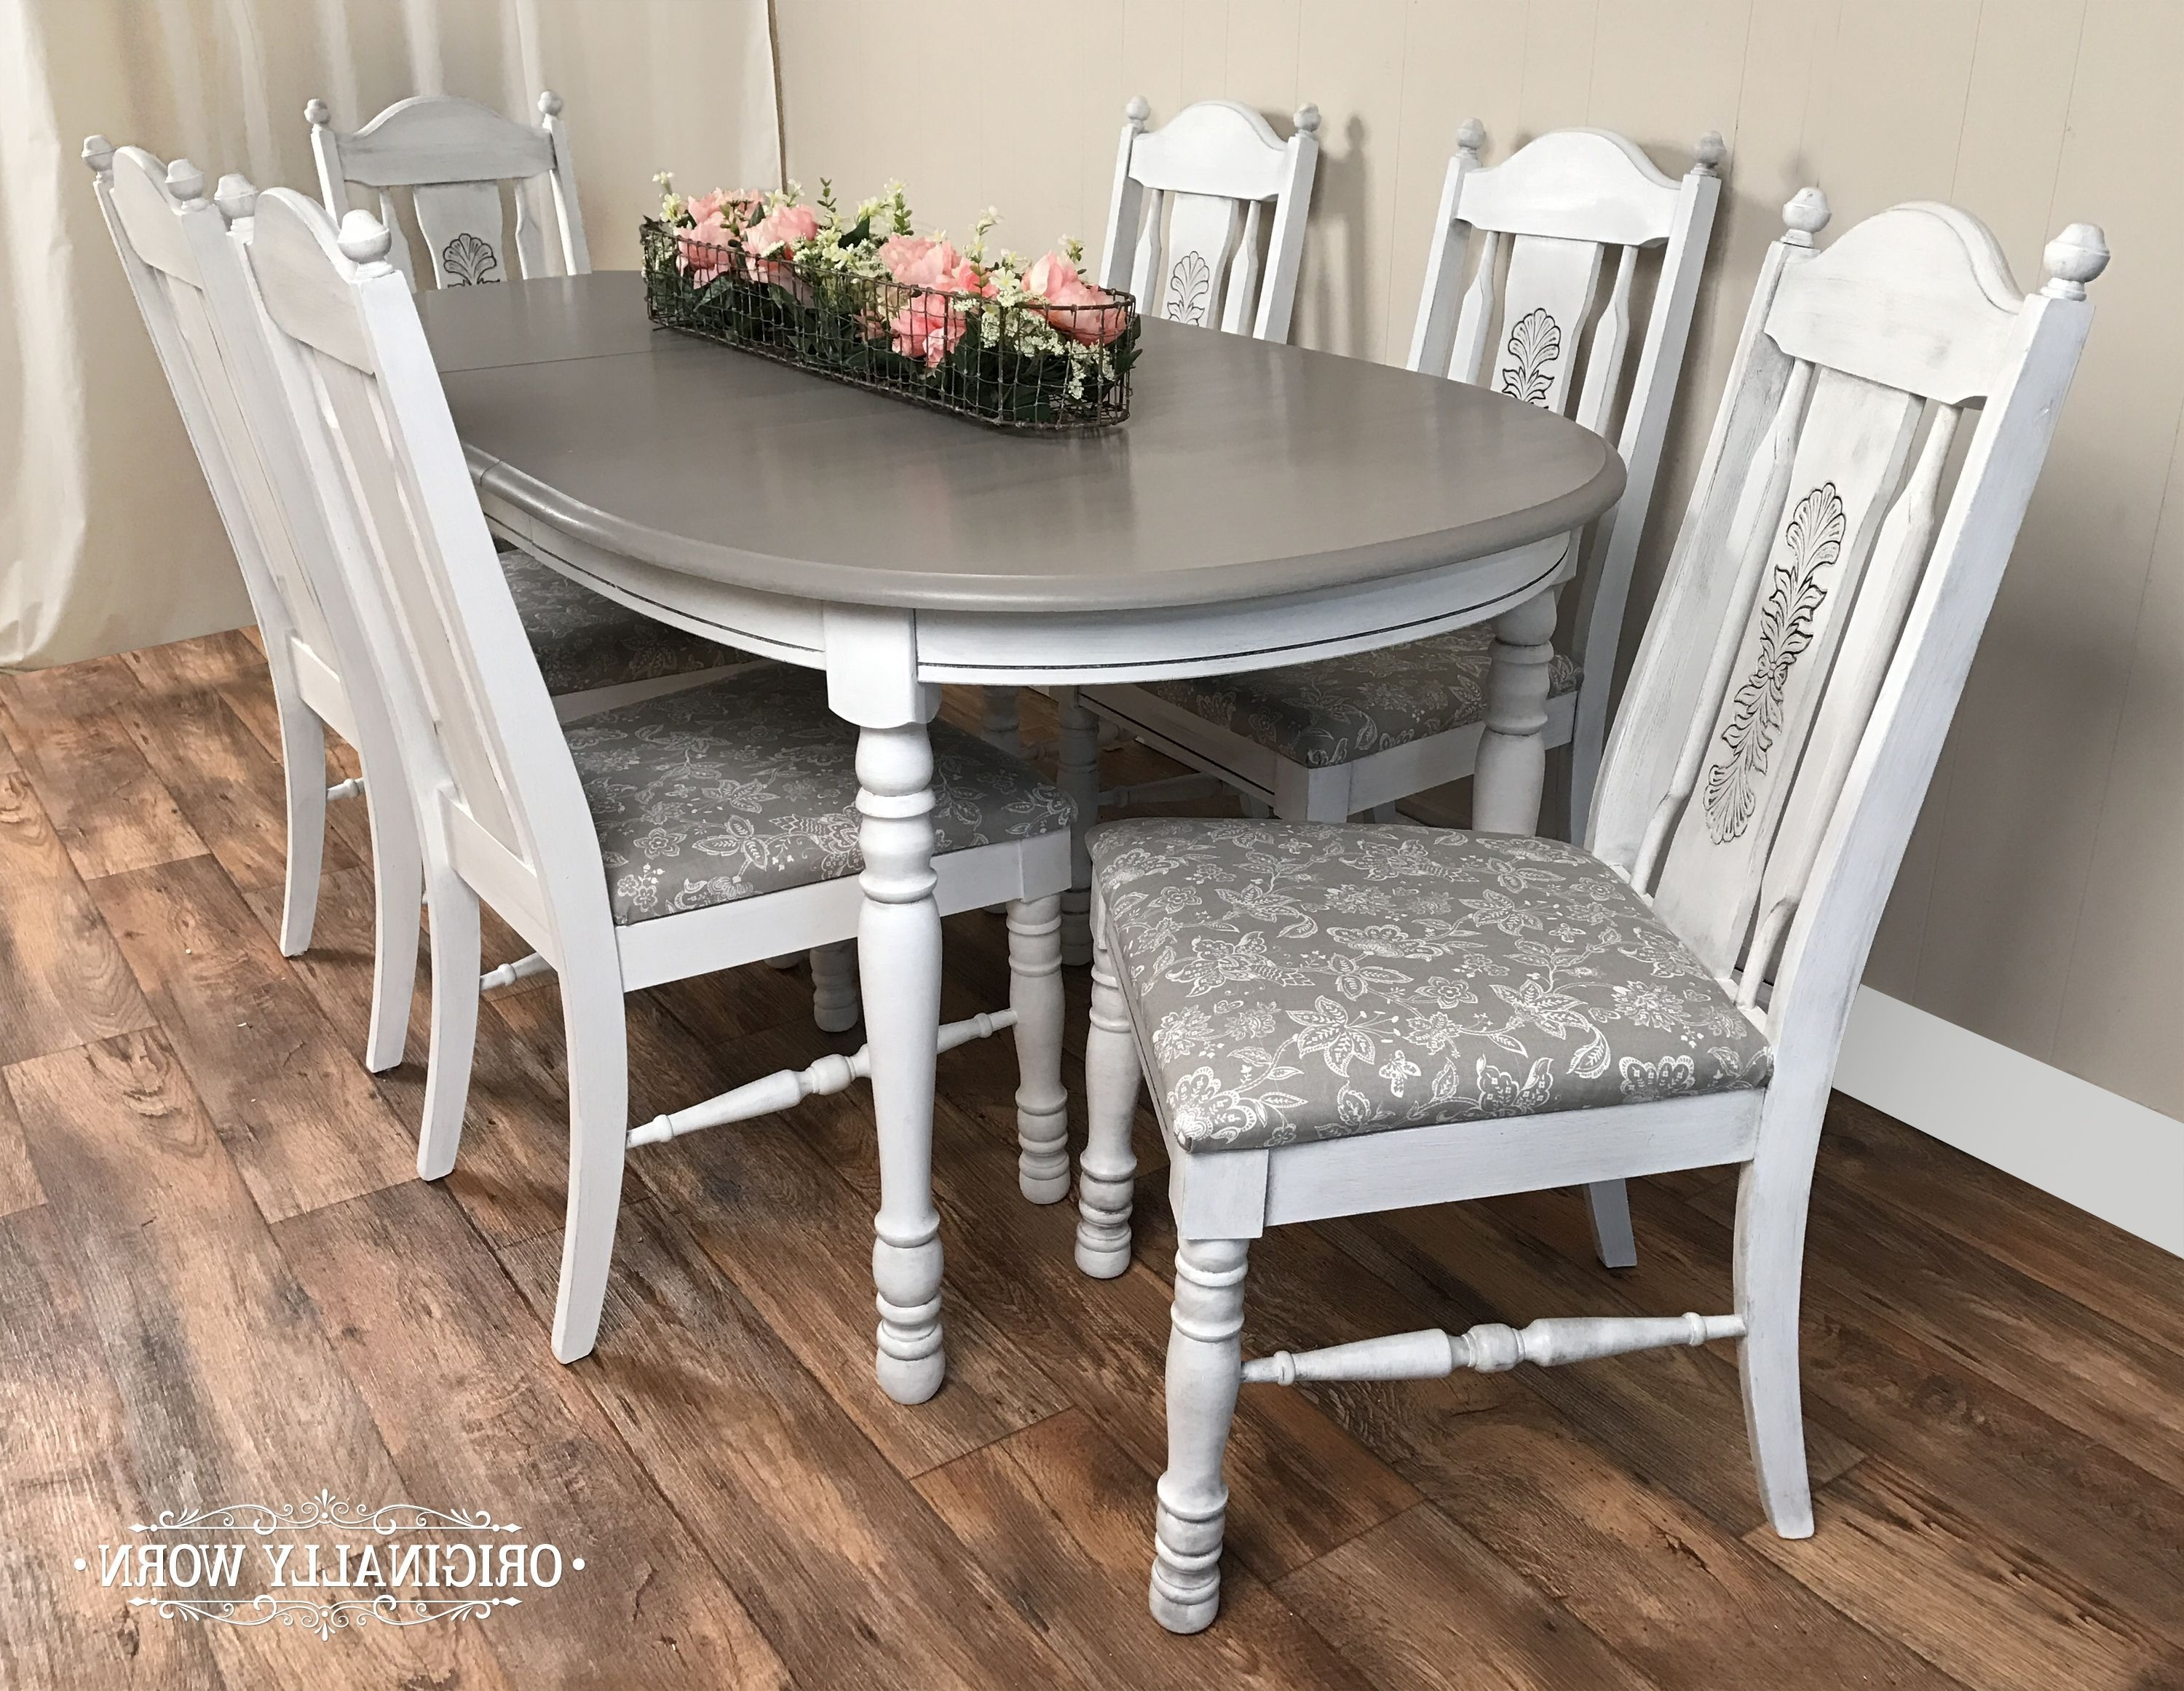 Fashionable Market 7 Piece Dining Sets With Host And Side Chairs Regarding 7 Piece Oval Dining Set In Annie Sloan Chalk Paint In Pure White And (View 9 of 25)